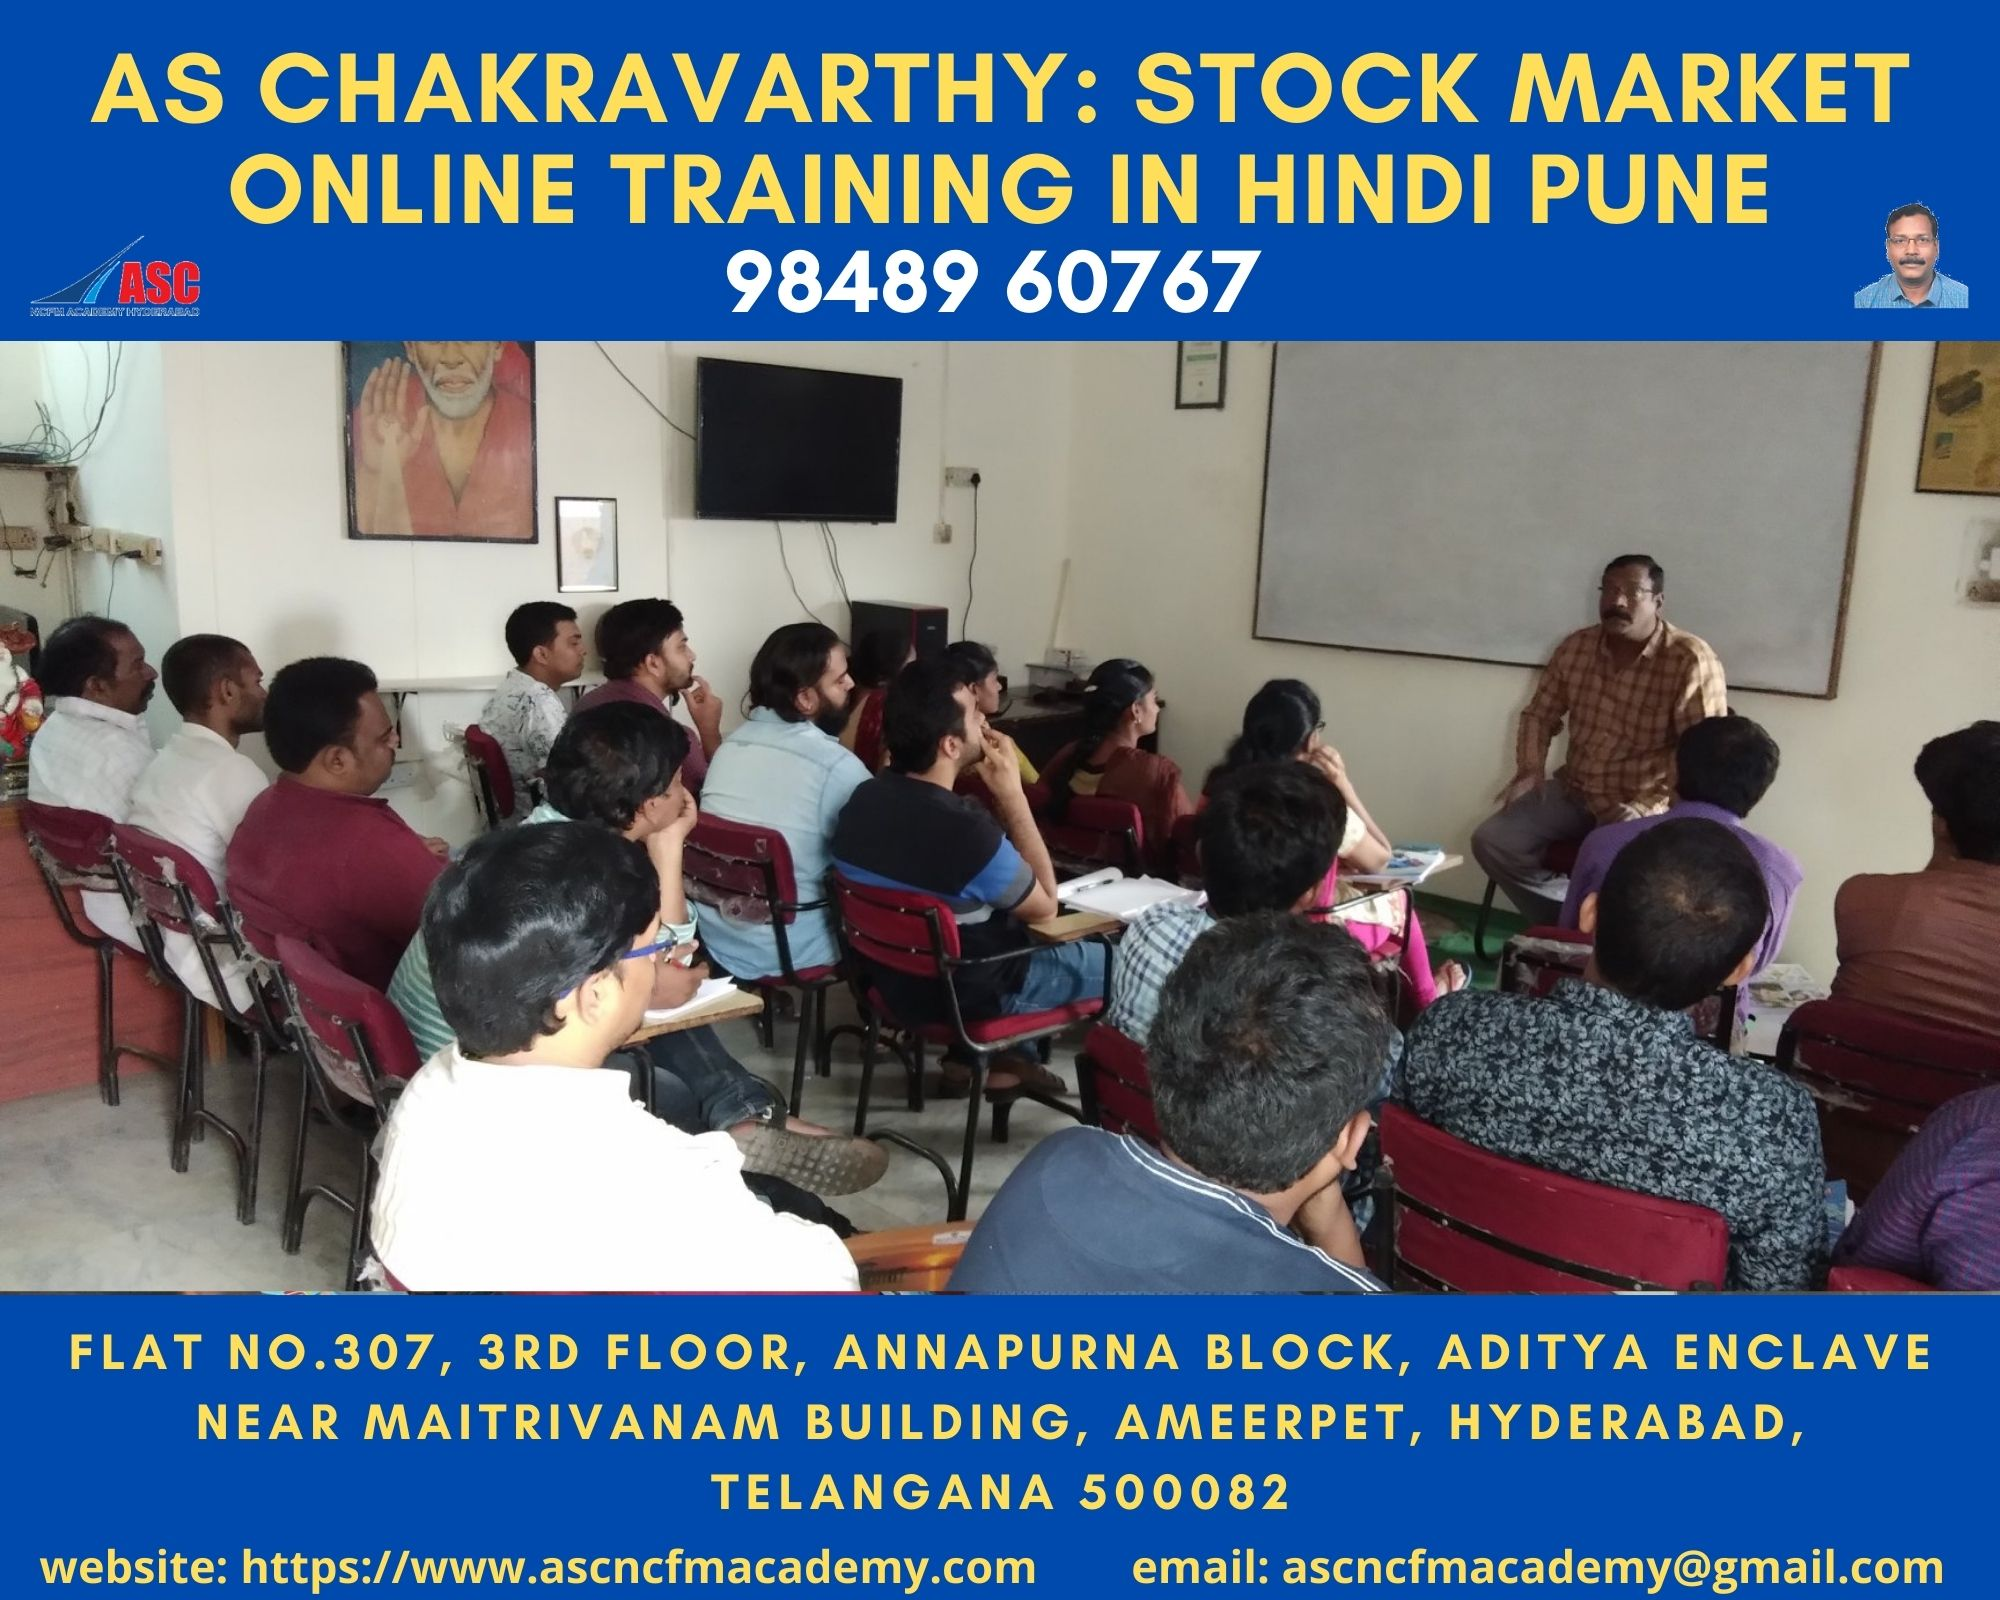 Online Stock Market Technical Training in Hindi Pune